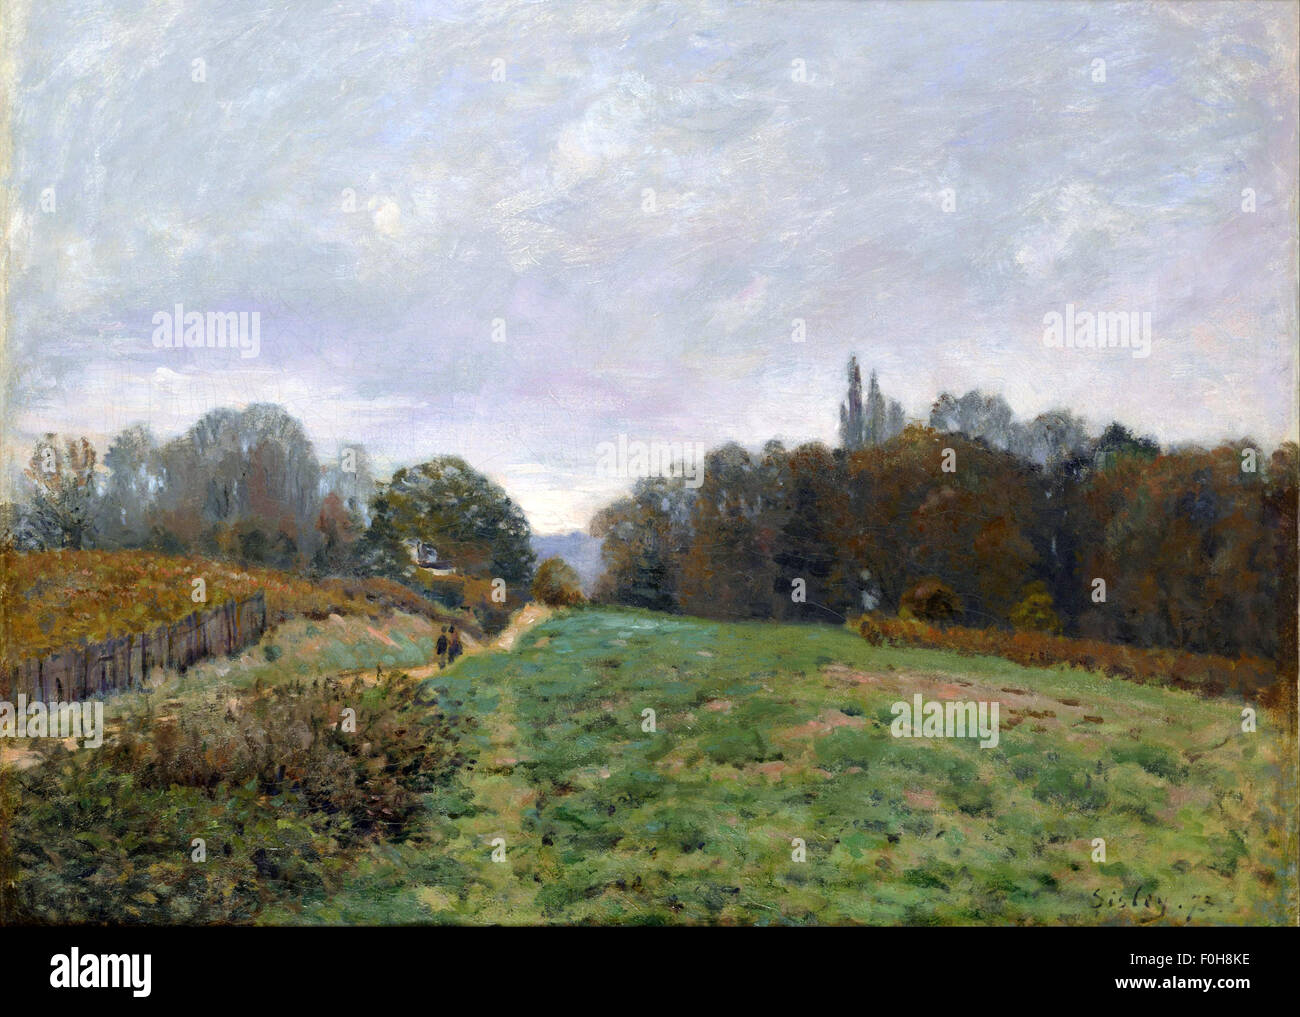 Alfred Sisley - Landscape at Louveciennes - Stock Image